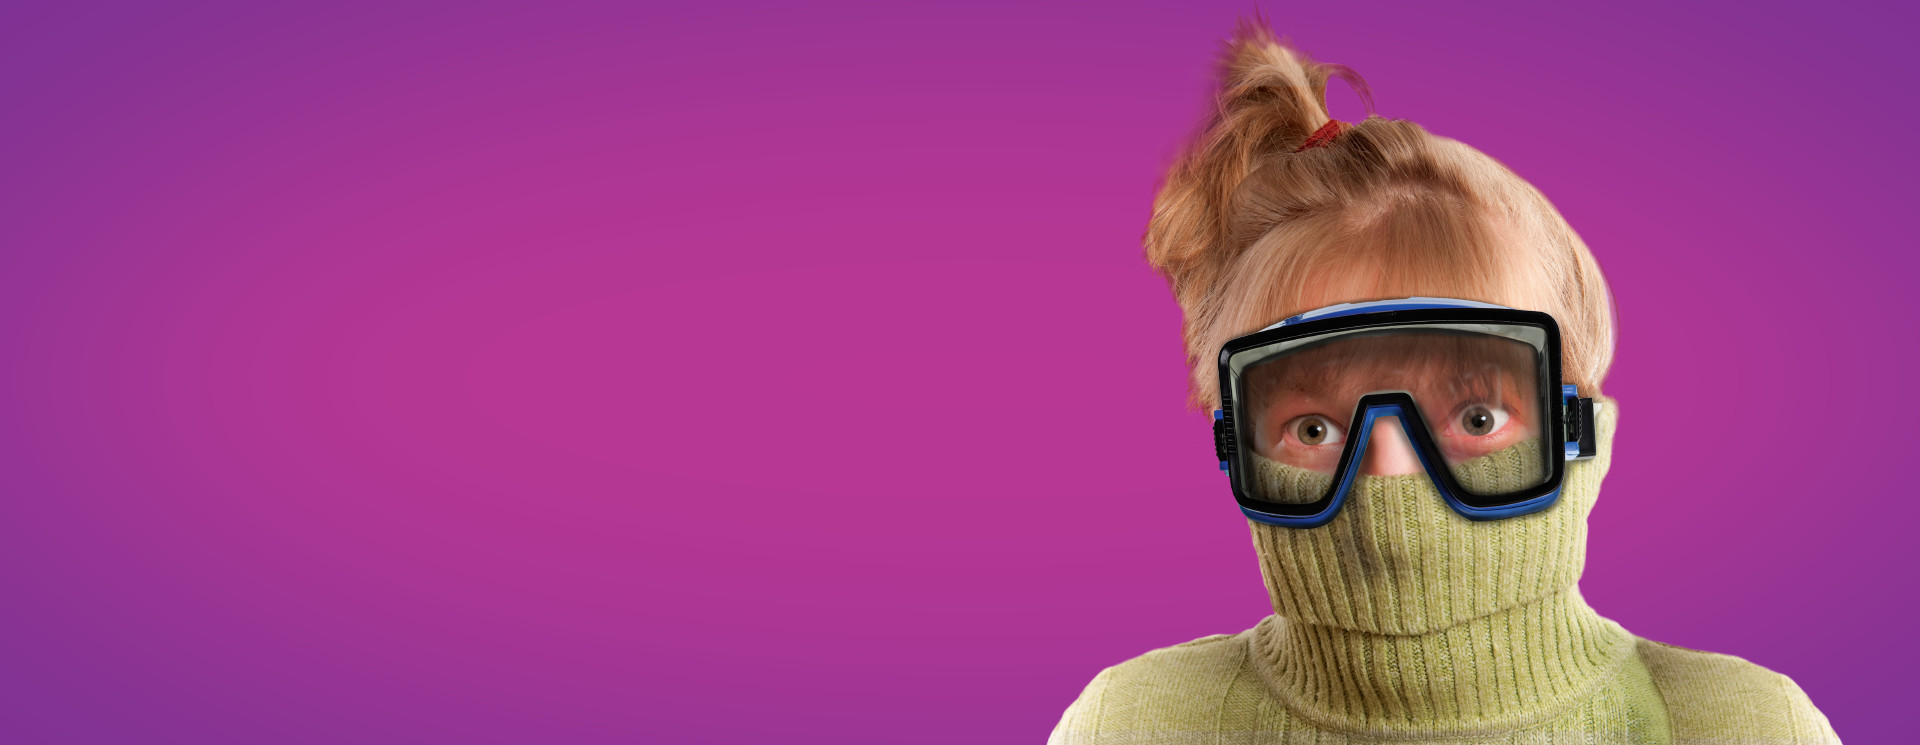 Young girl in a turtleneck pulled up over her nose with swim goggles on her face